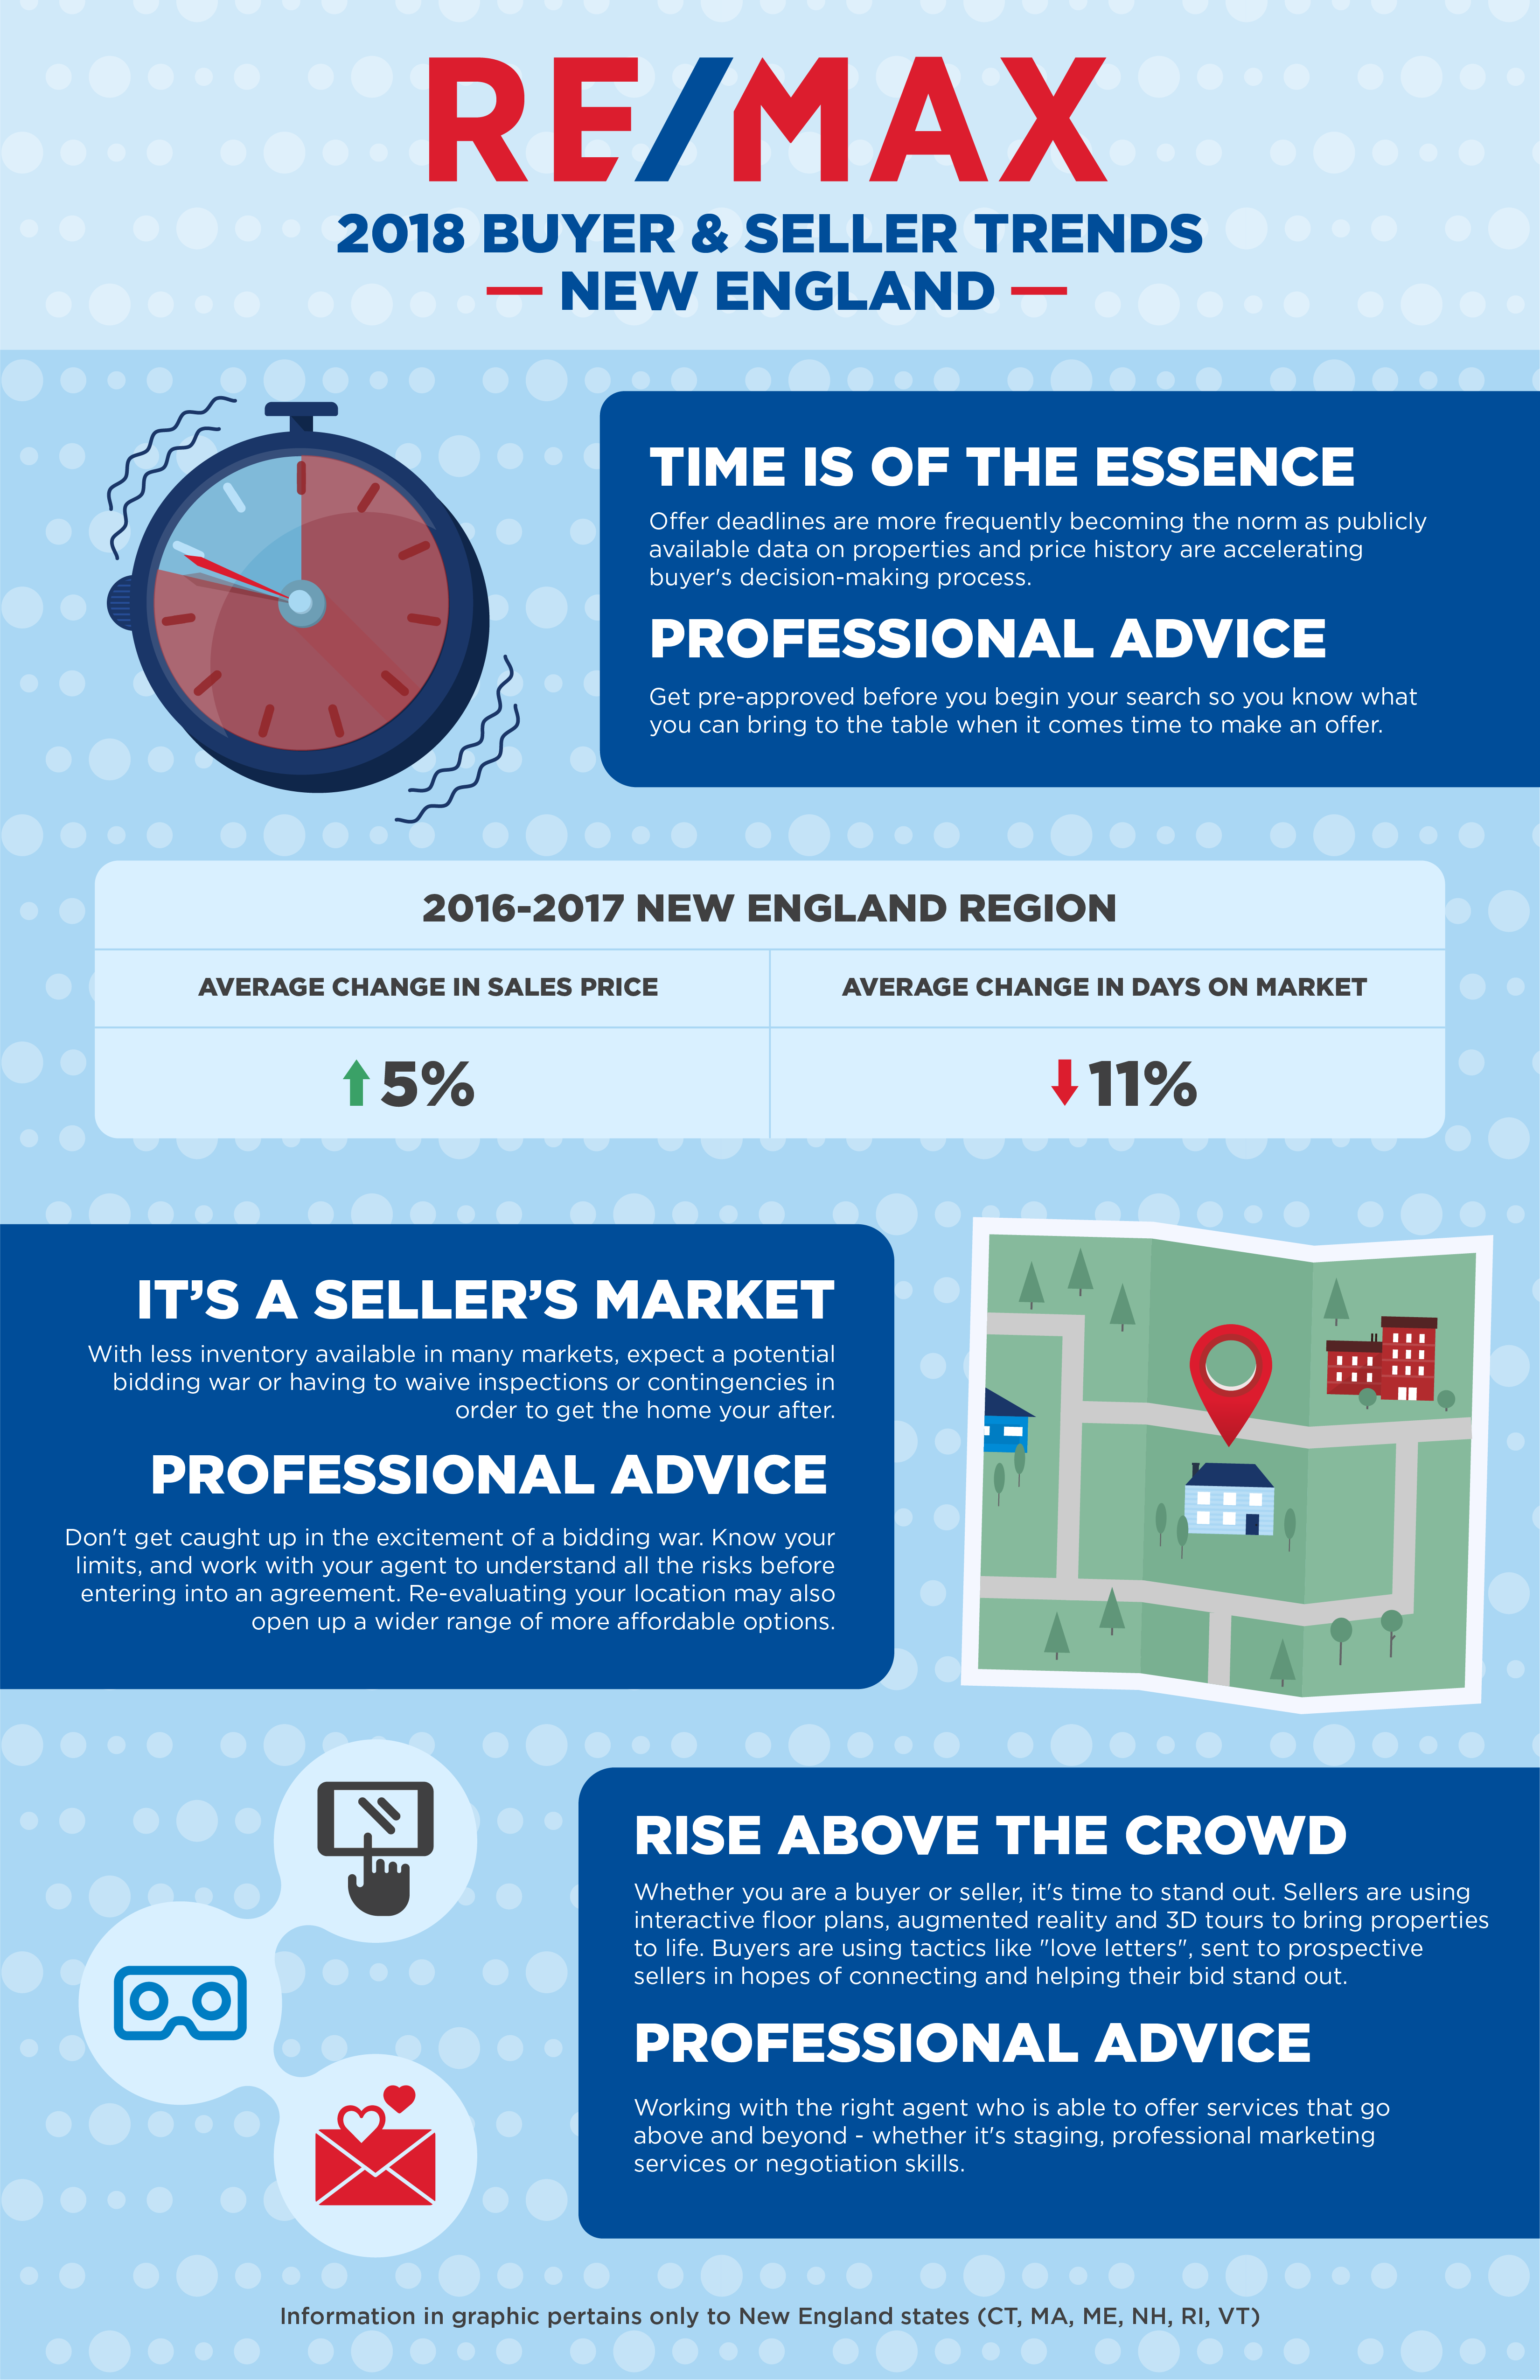 Remax_Infographic_v6%20%281%29.png